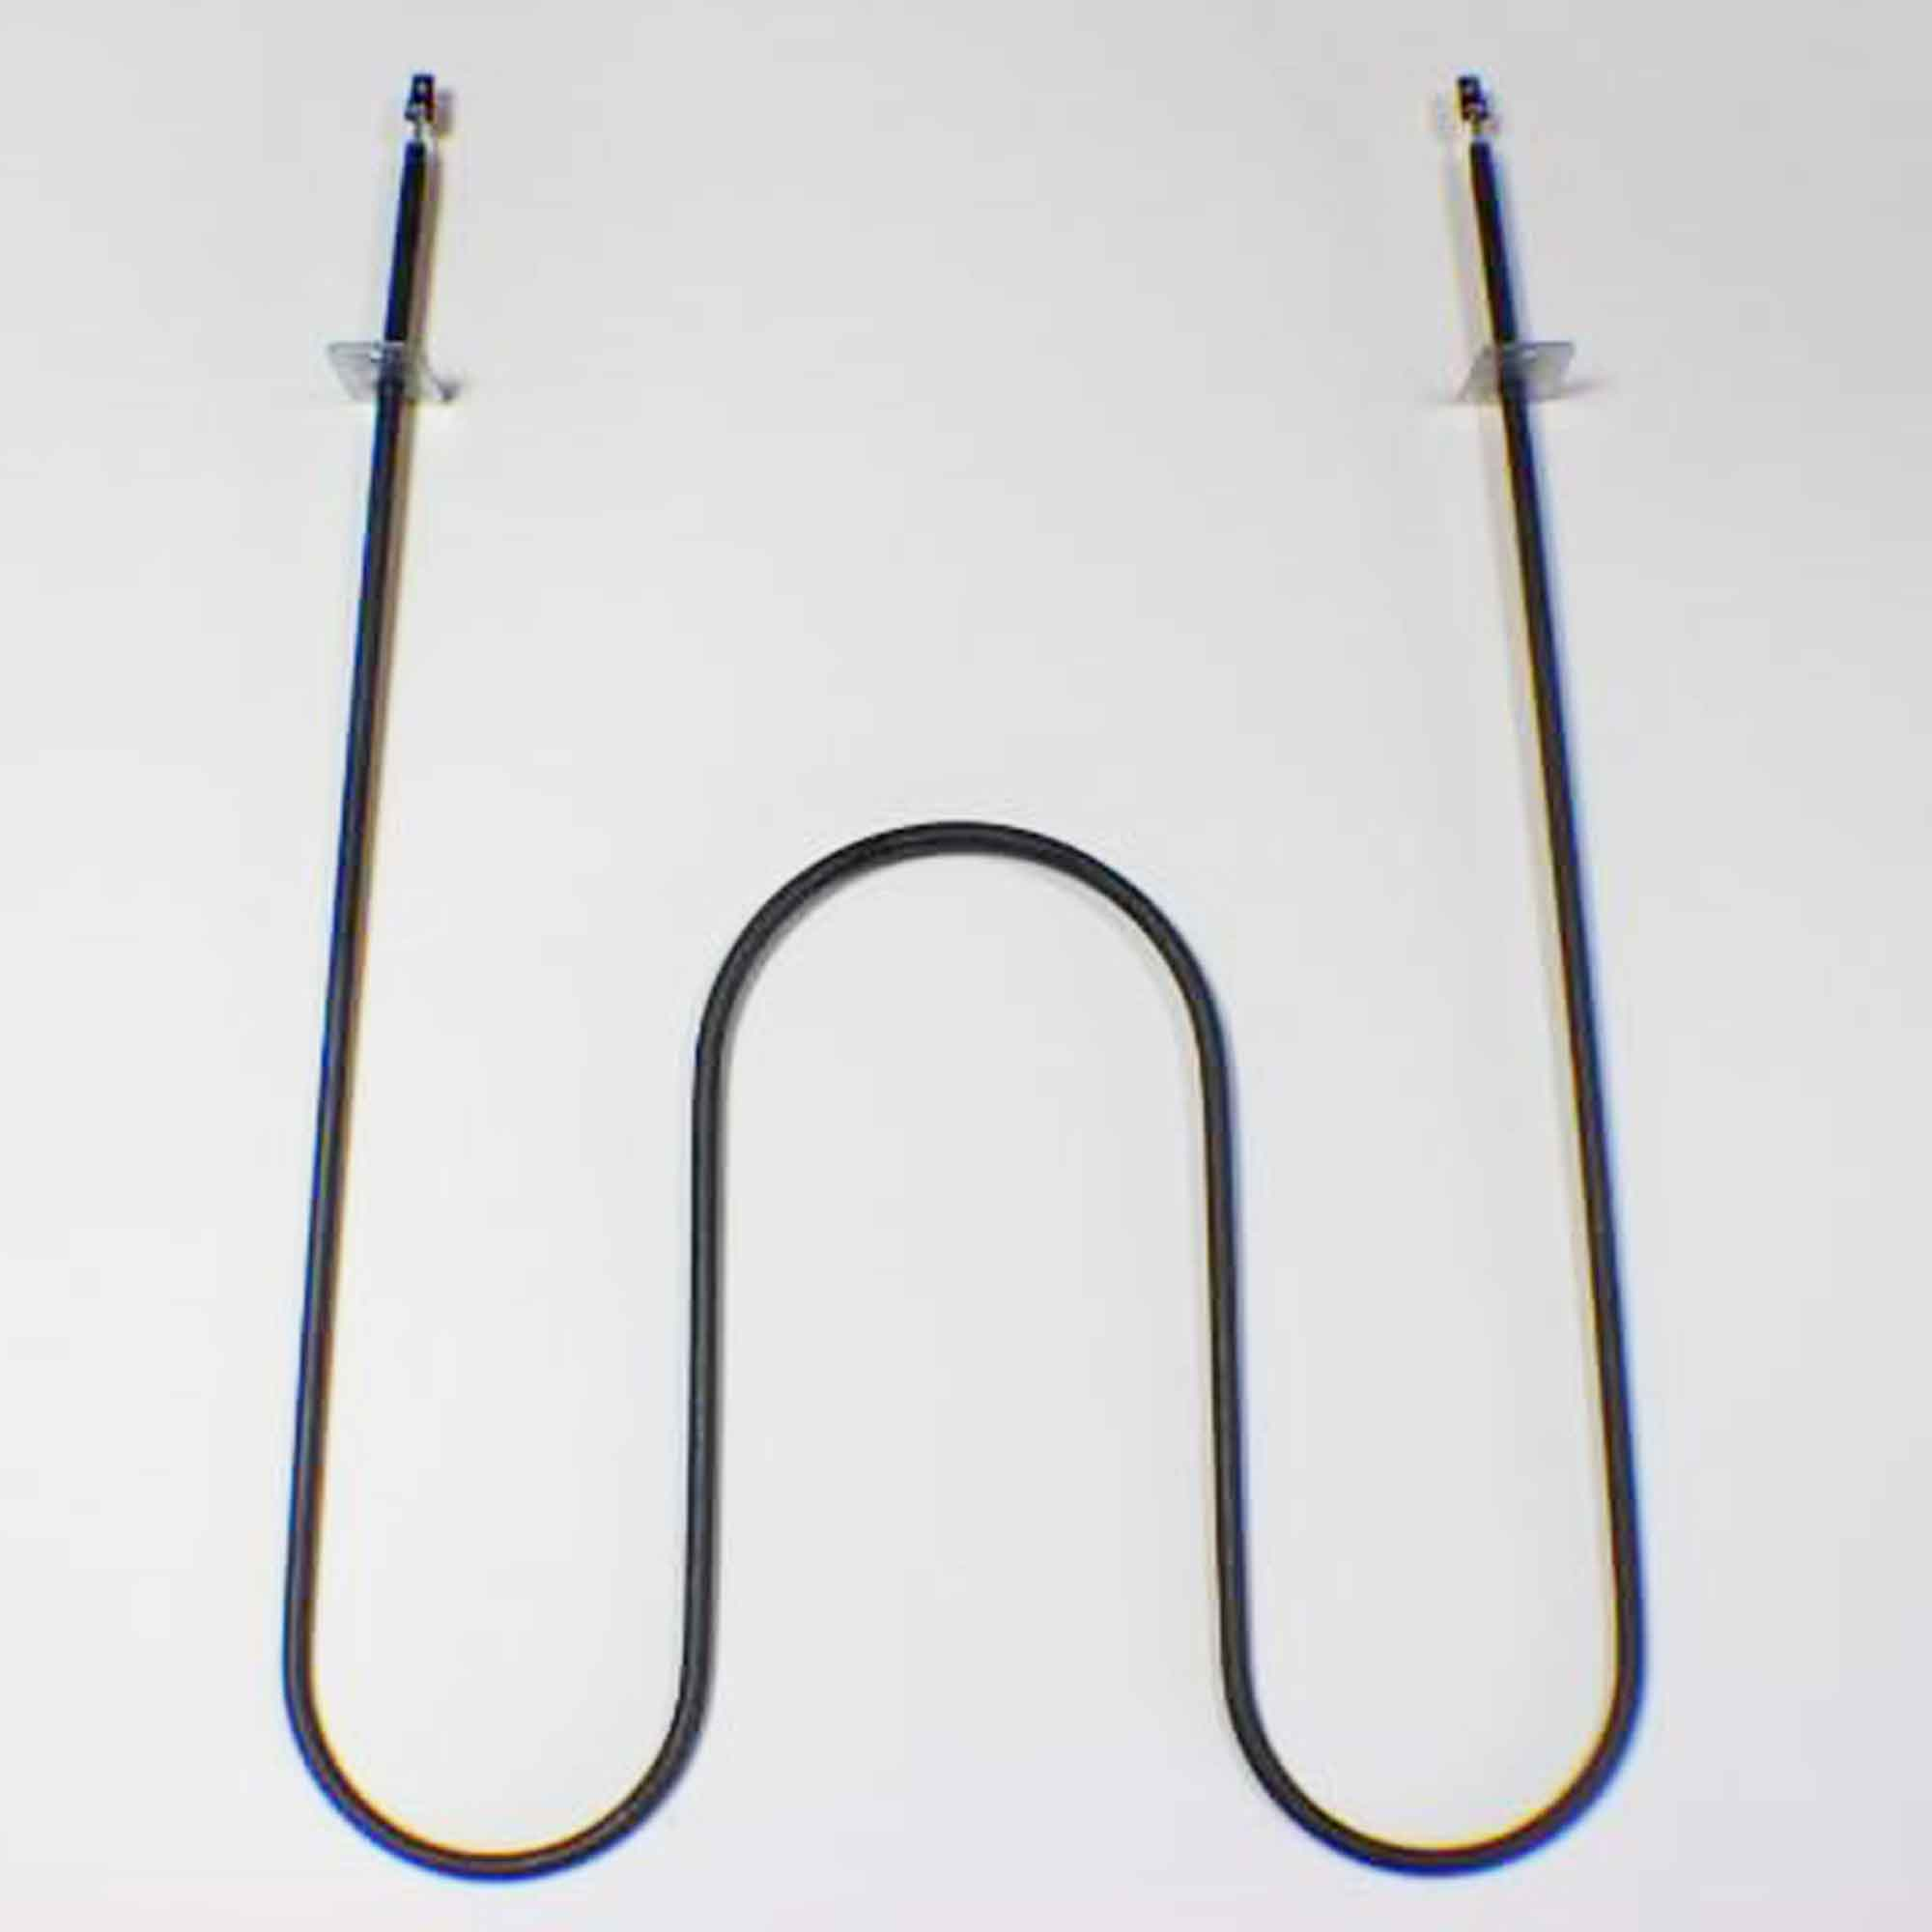 W10201551 For Whirlpool Oven Broil Element